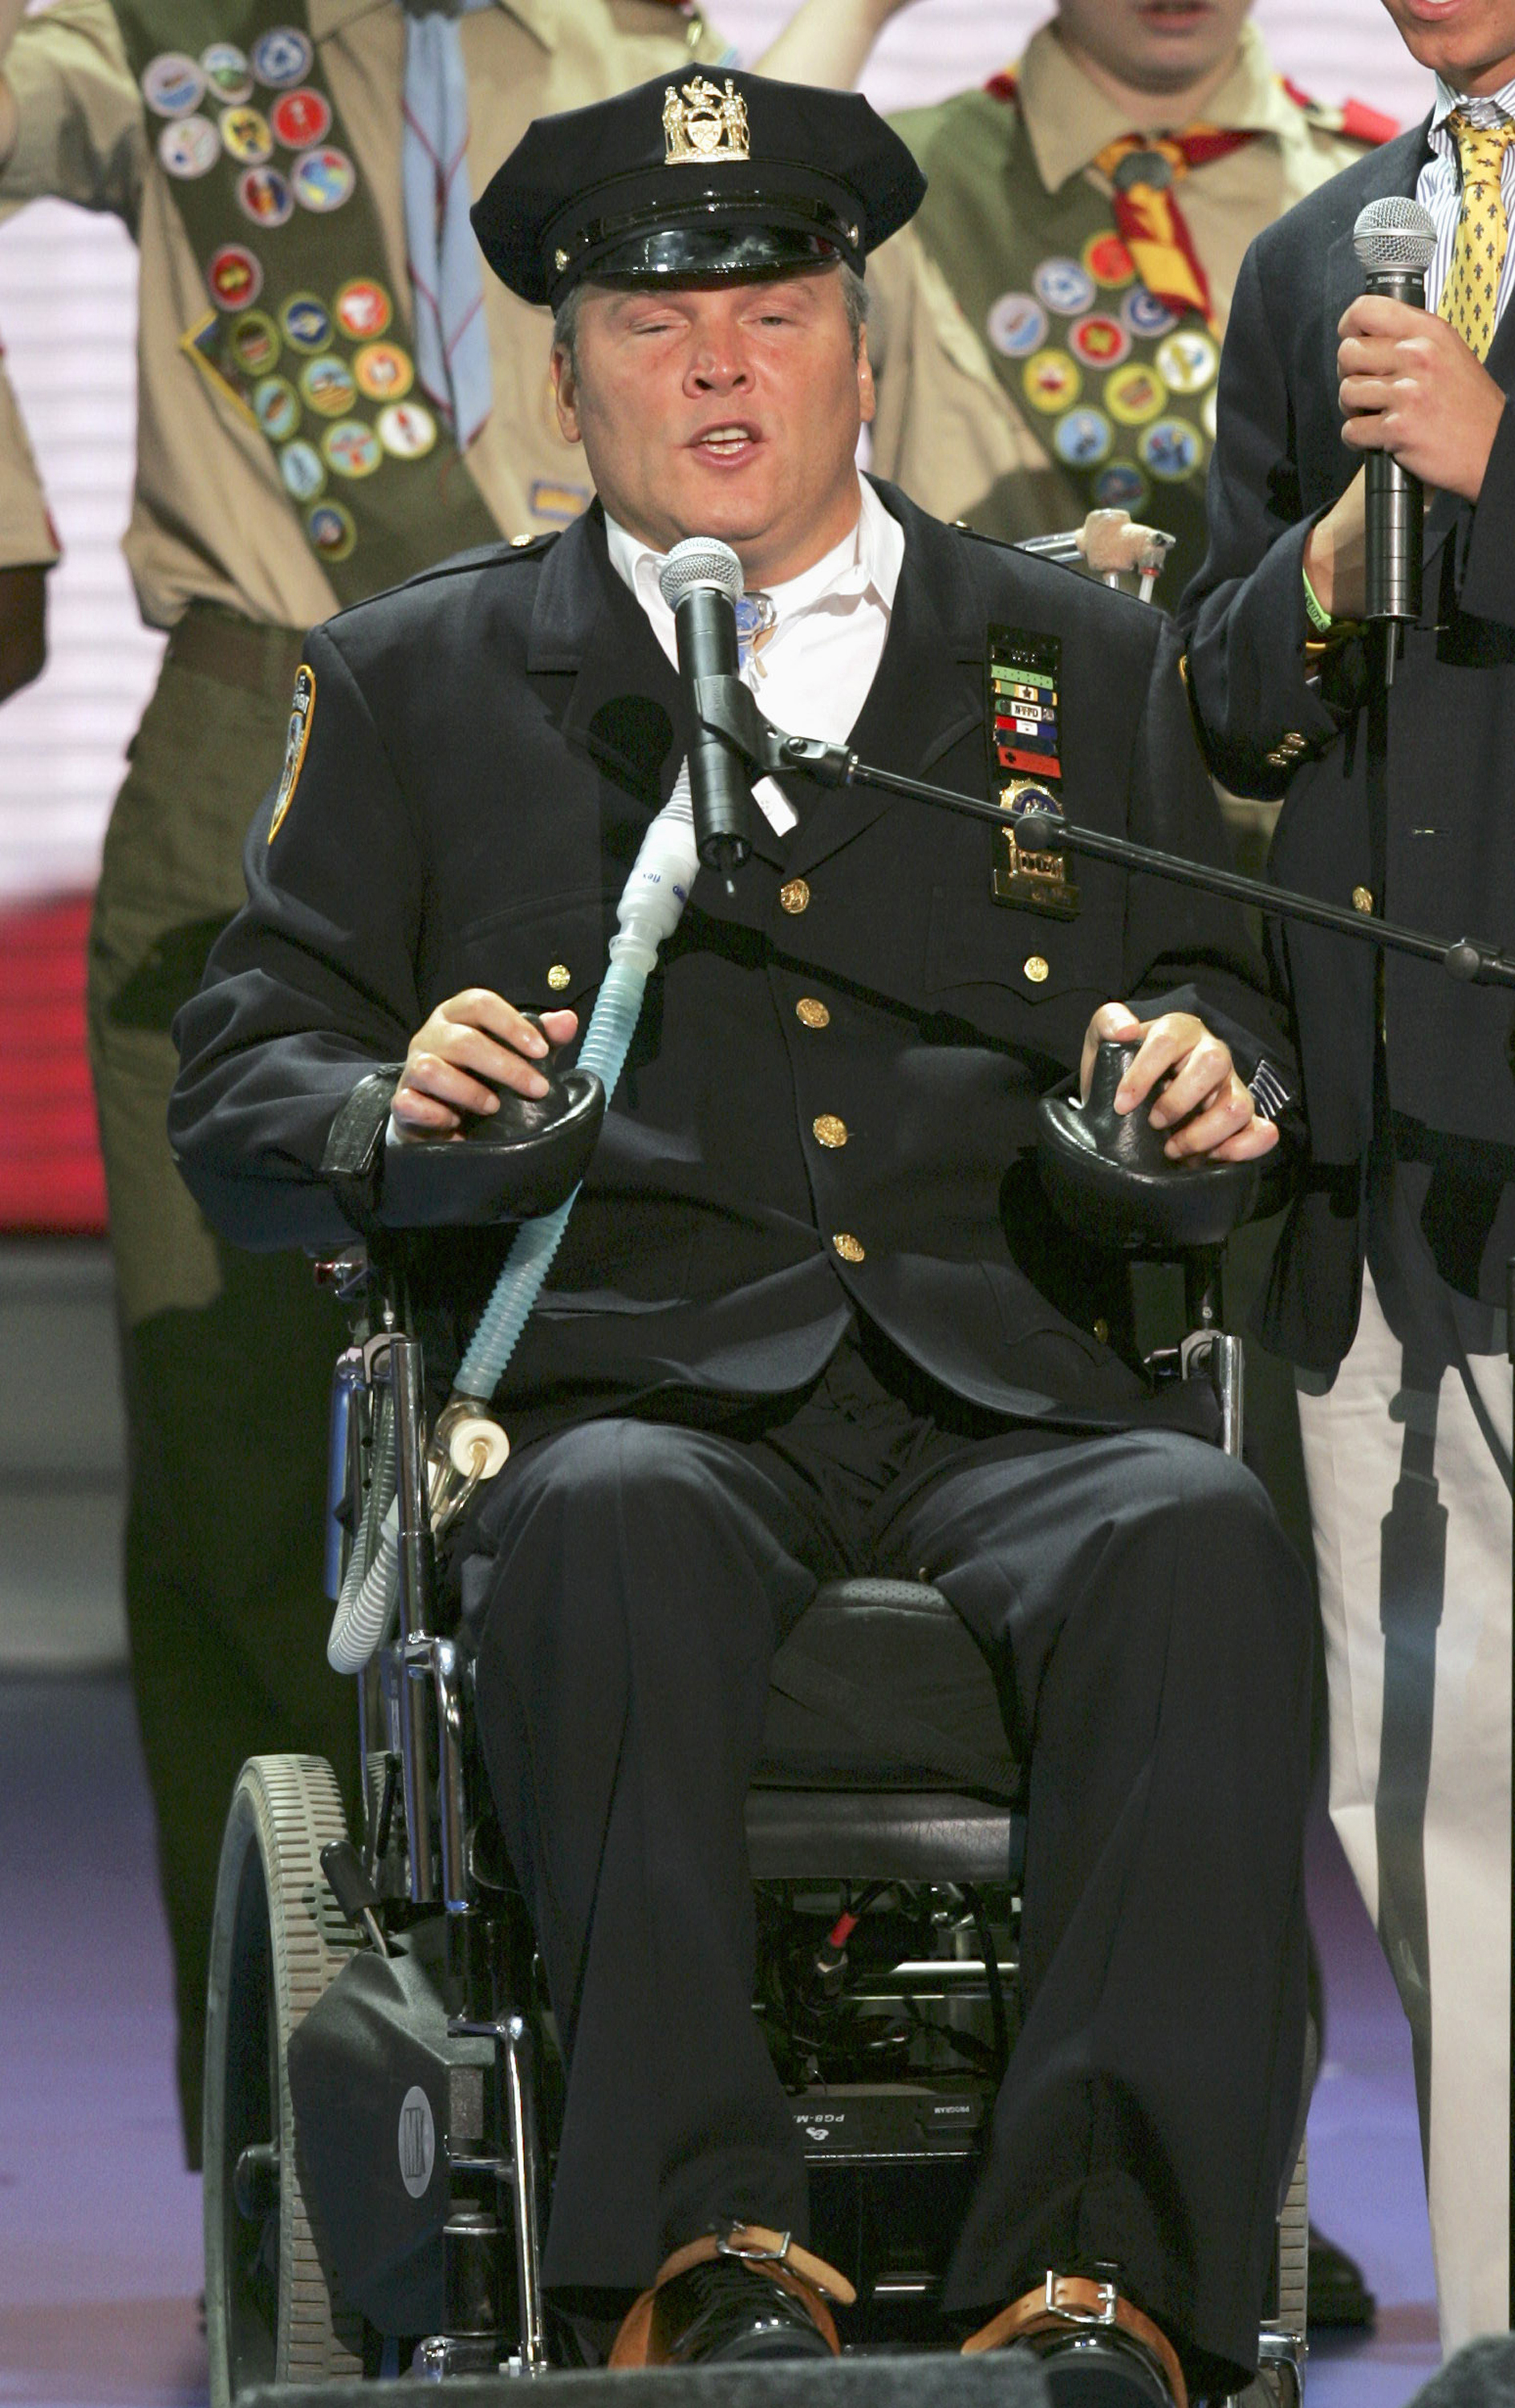 New York Police Officer Steven McDonald recites the Pledge of Allegiance before the morning session of the Republican National Convention at Madison Square Garden in New York, on  Aug. 30, 2004. (AP Photo/J. Scott Applewhite)